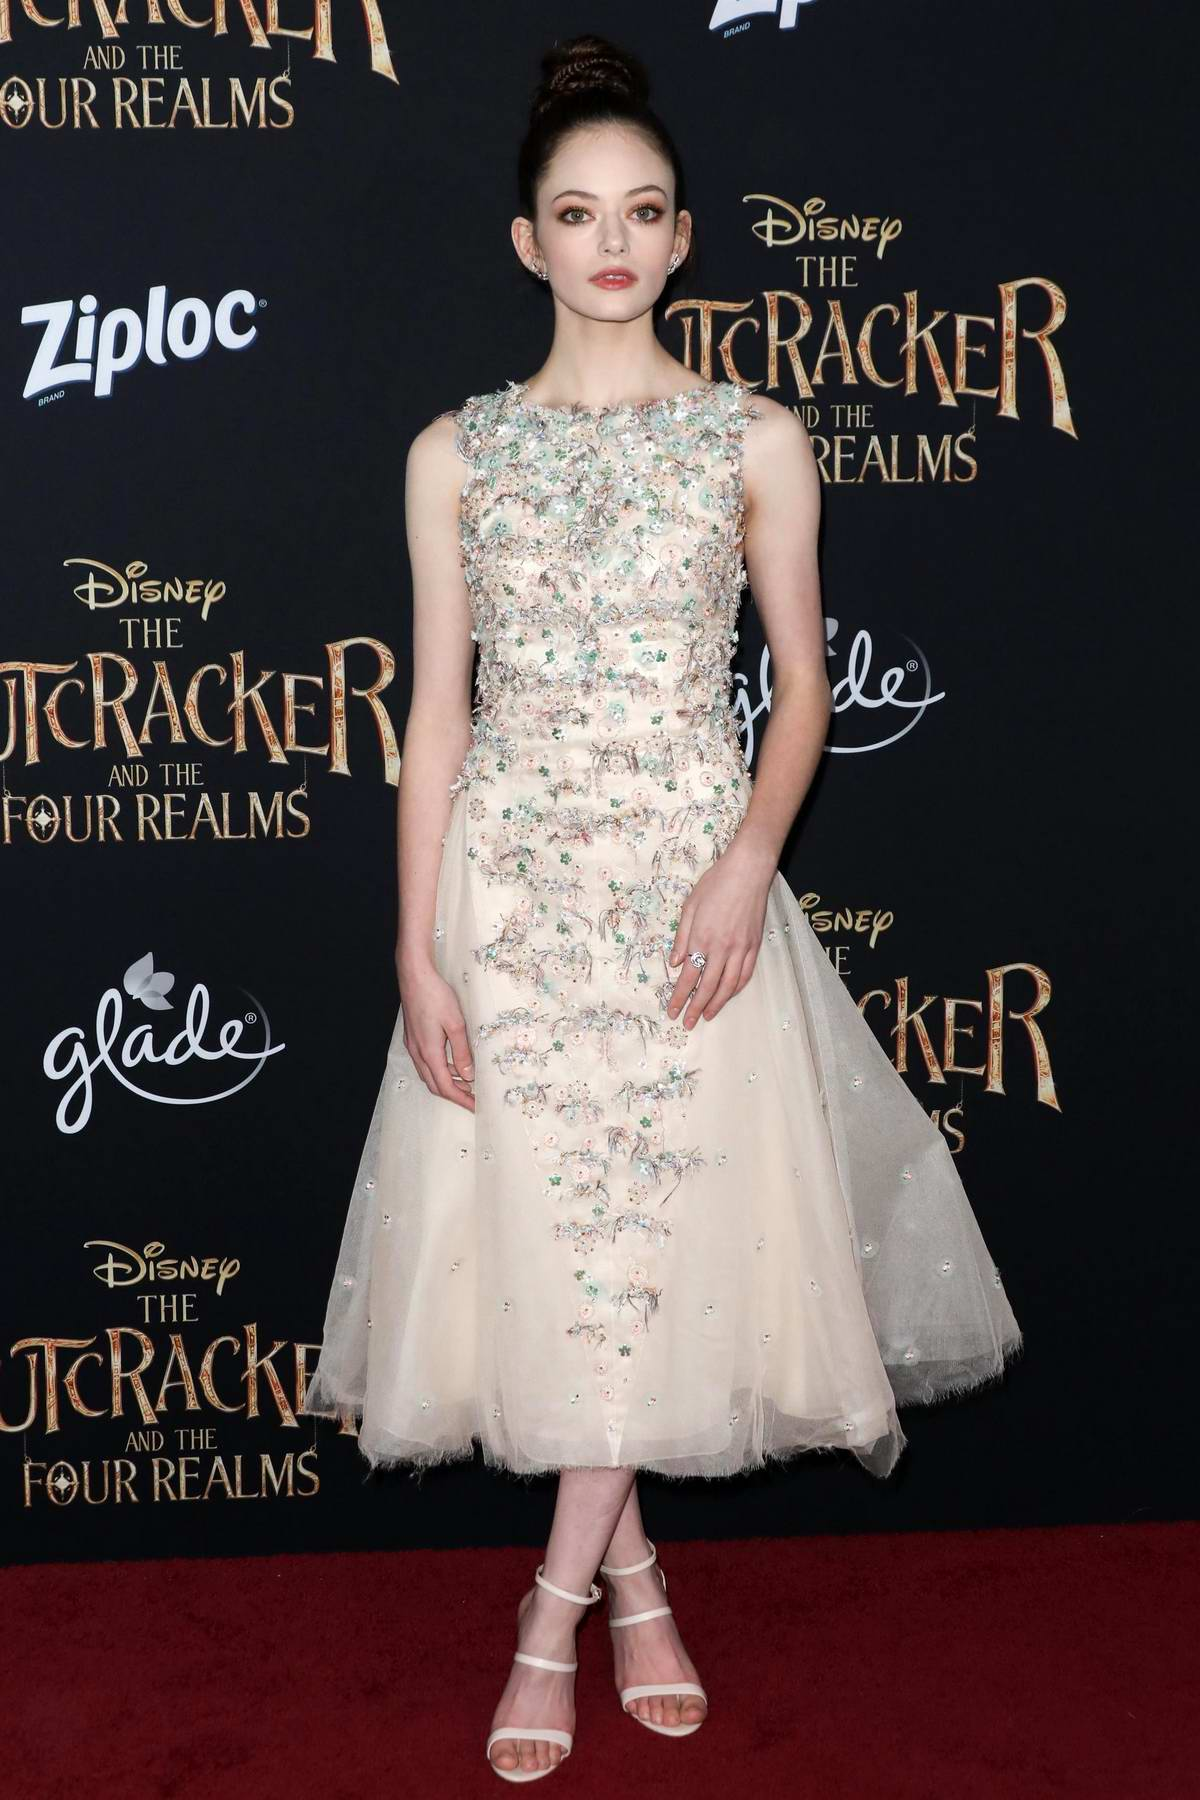 Mackenzie Foy attends 'The Nutcracker And The Four Realms' at the Ray Dolby Ballroom in Hollywood, Los Angeles